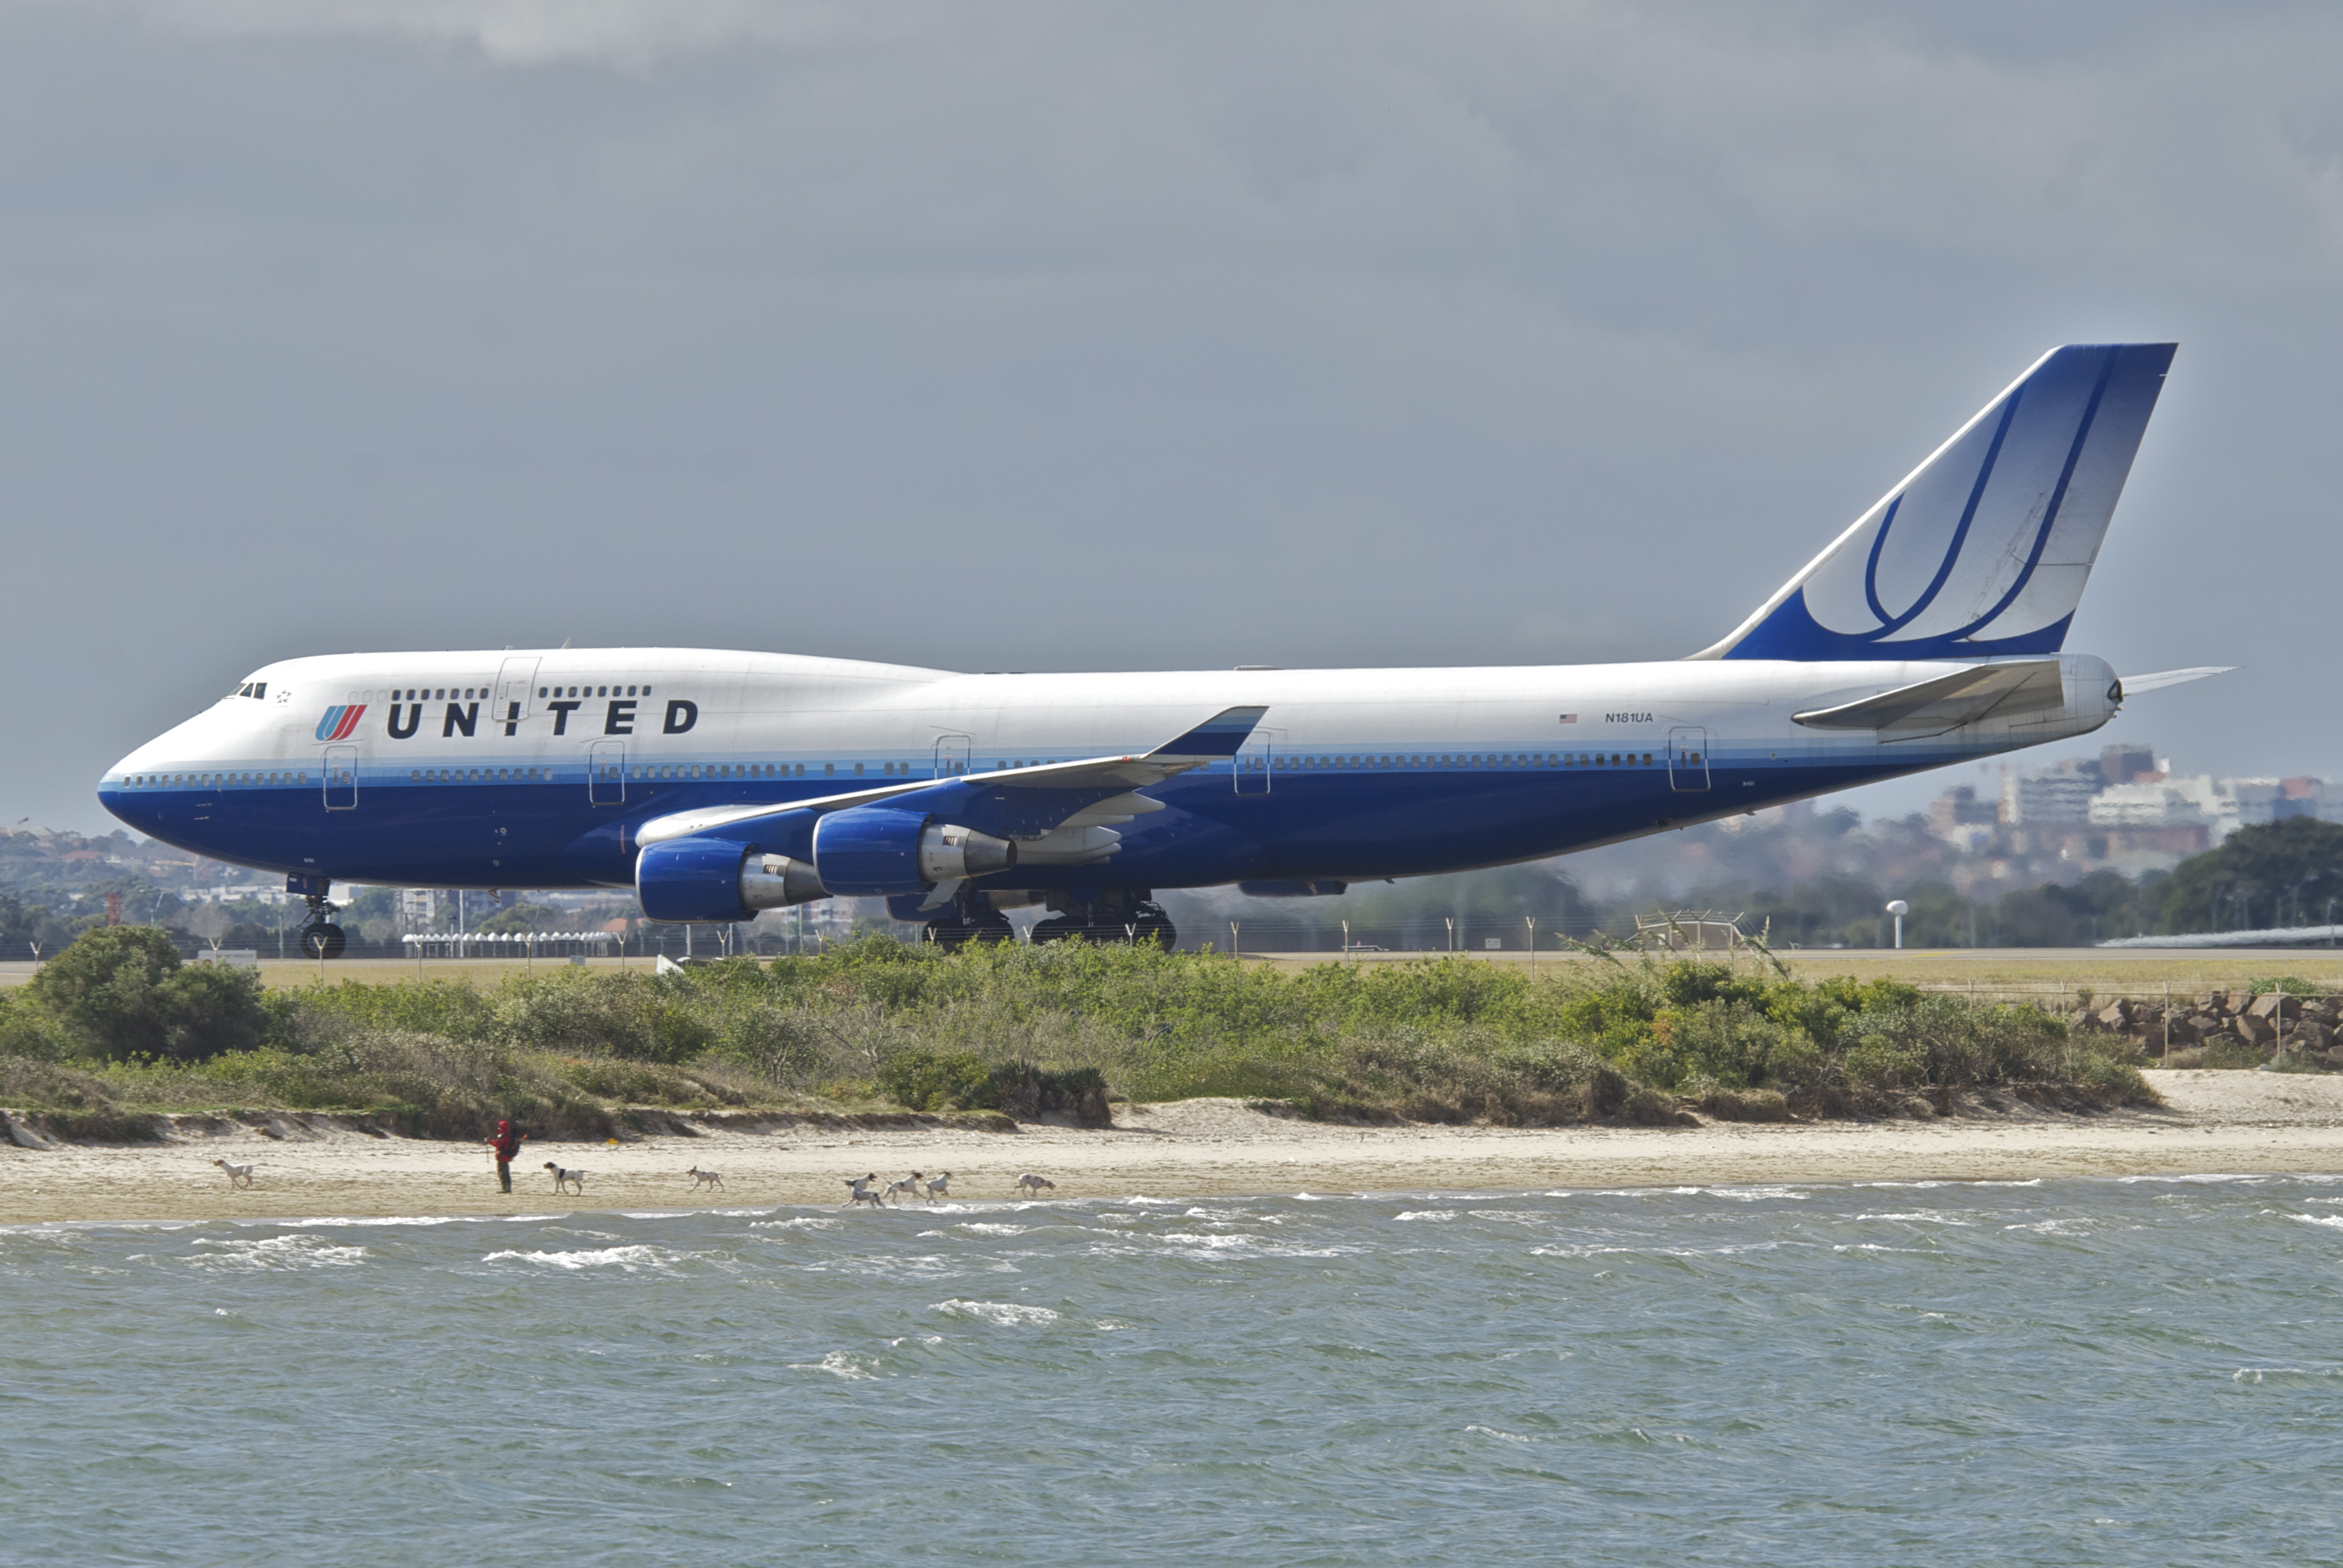 Boeing 747-400 fra United Airlines (Foto: Aero Icarus / Wikimedia Commons)